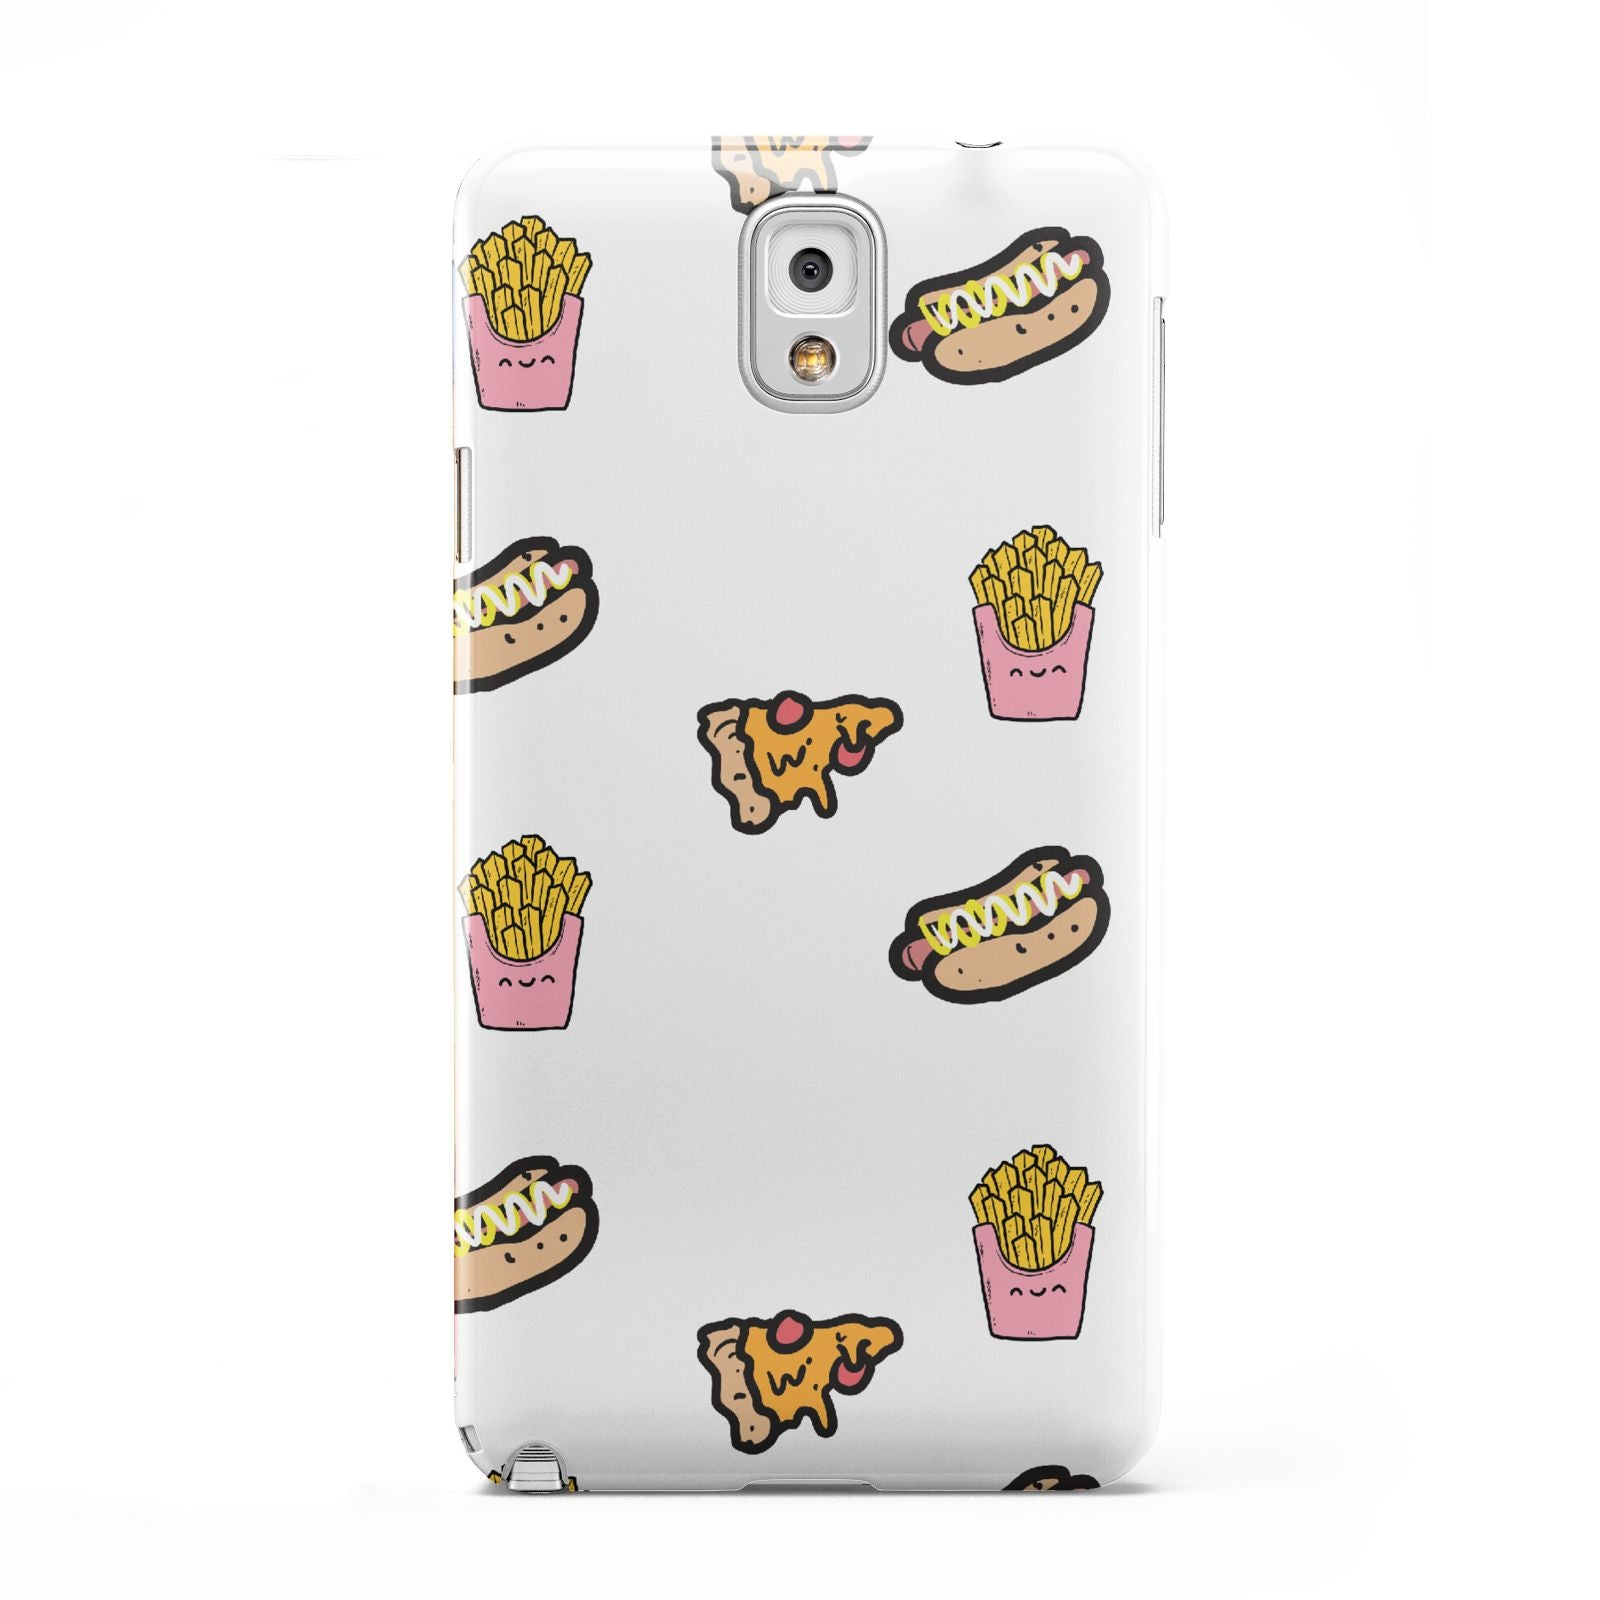 Fries Pizza Hot Dog Samsung Galaxy Note 3 Case